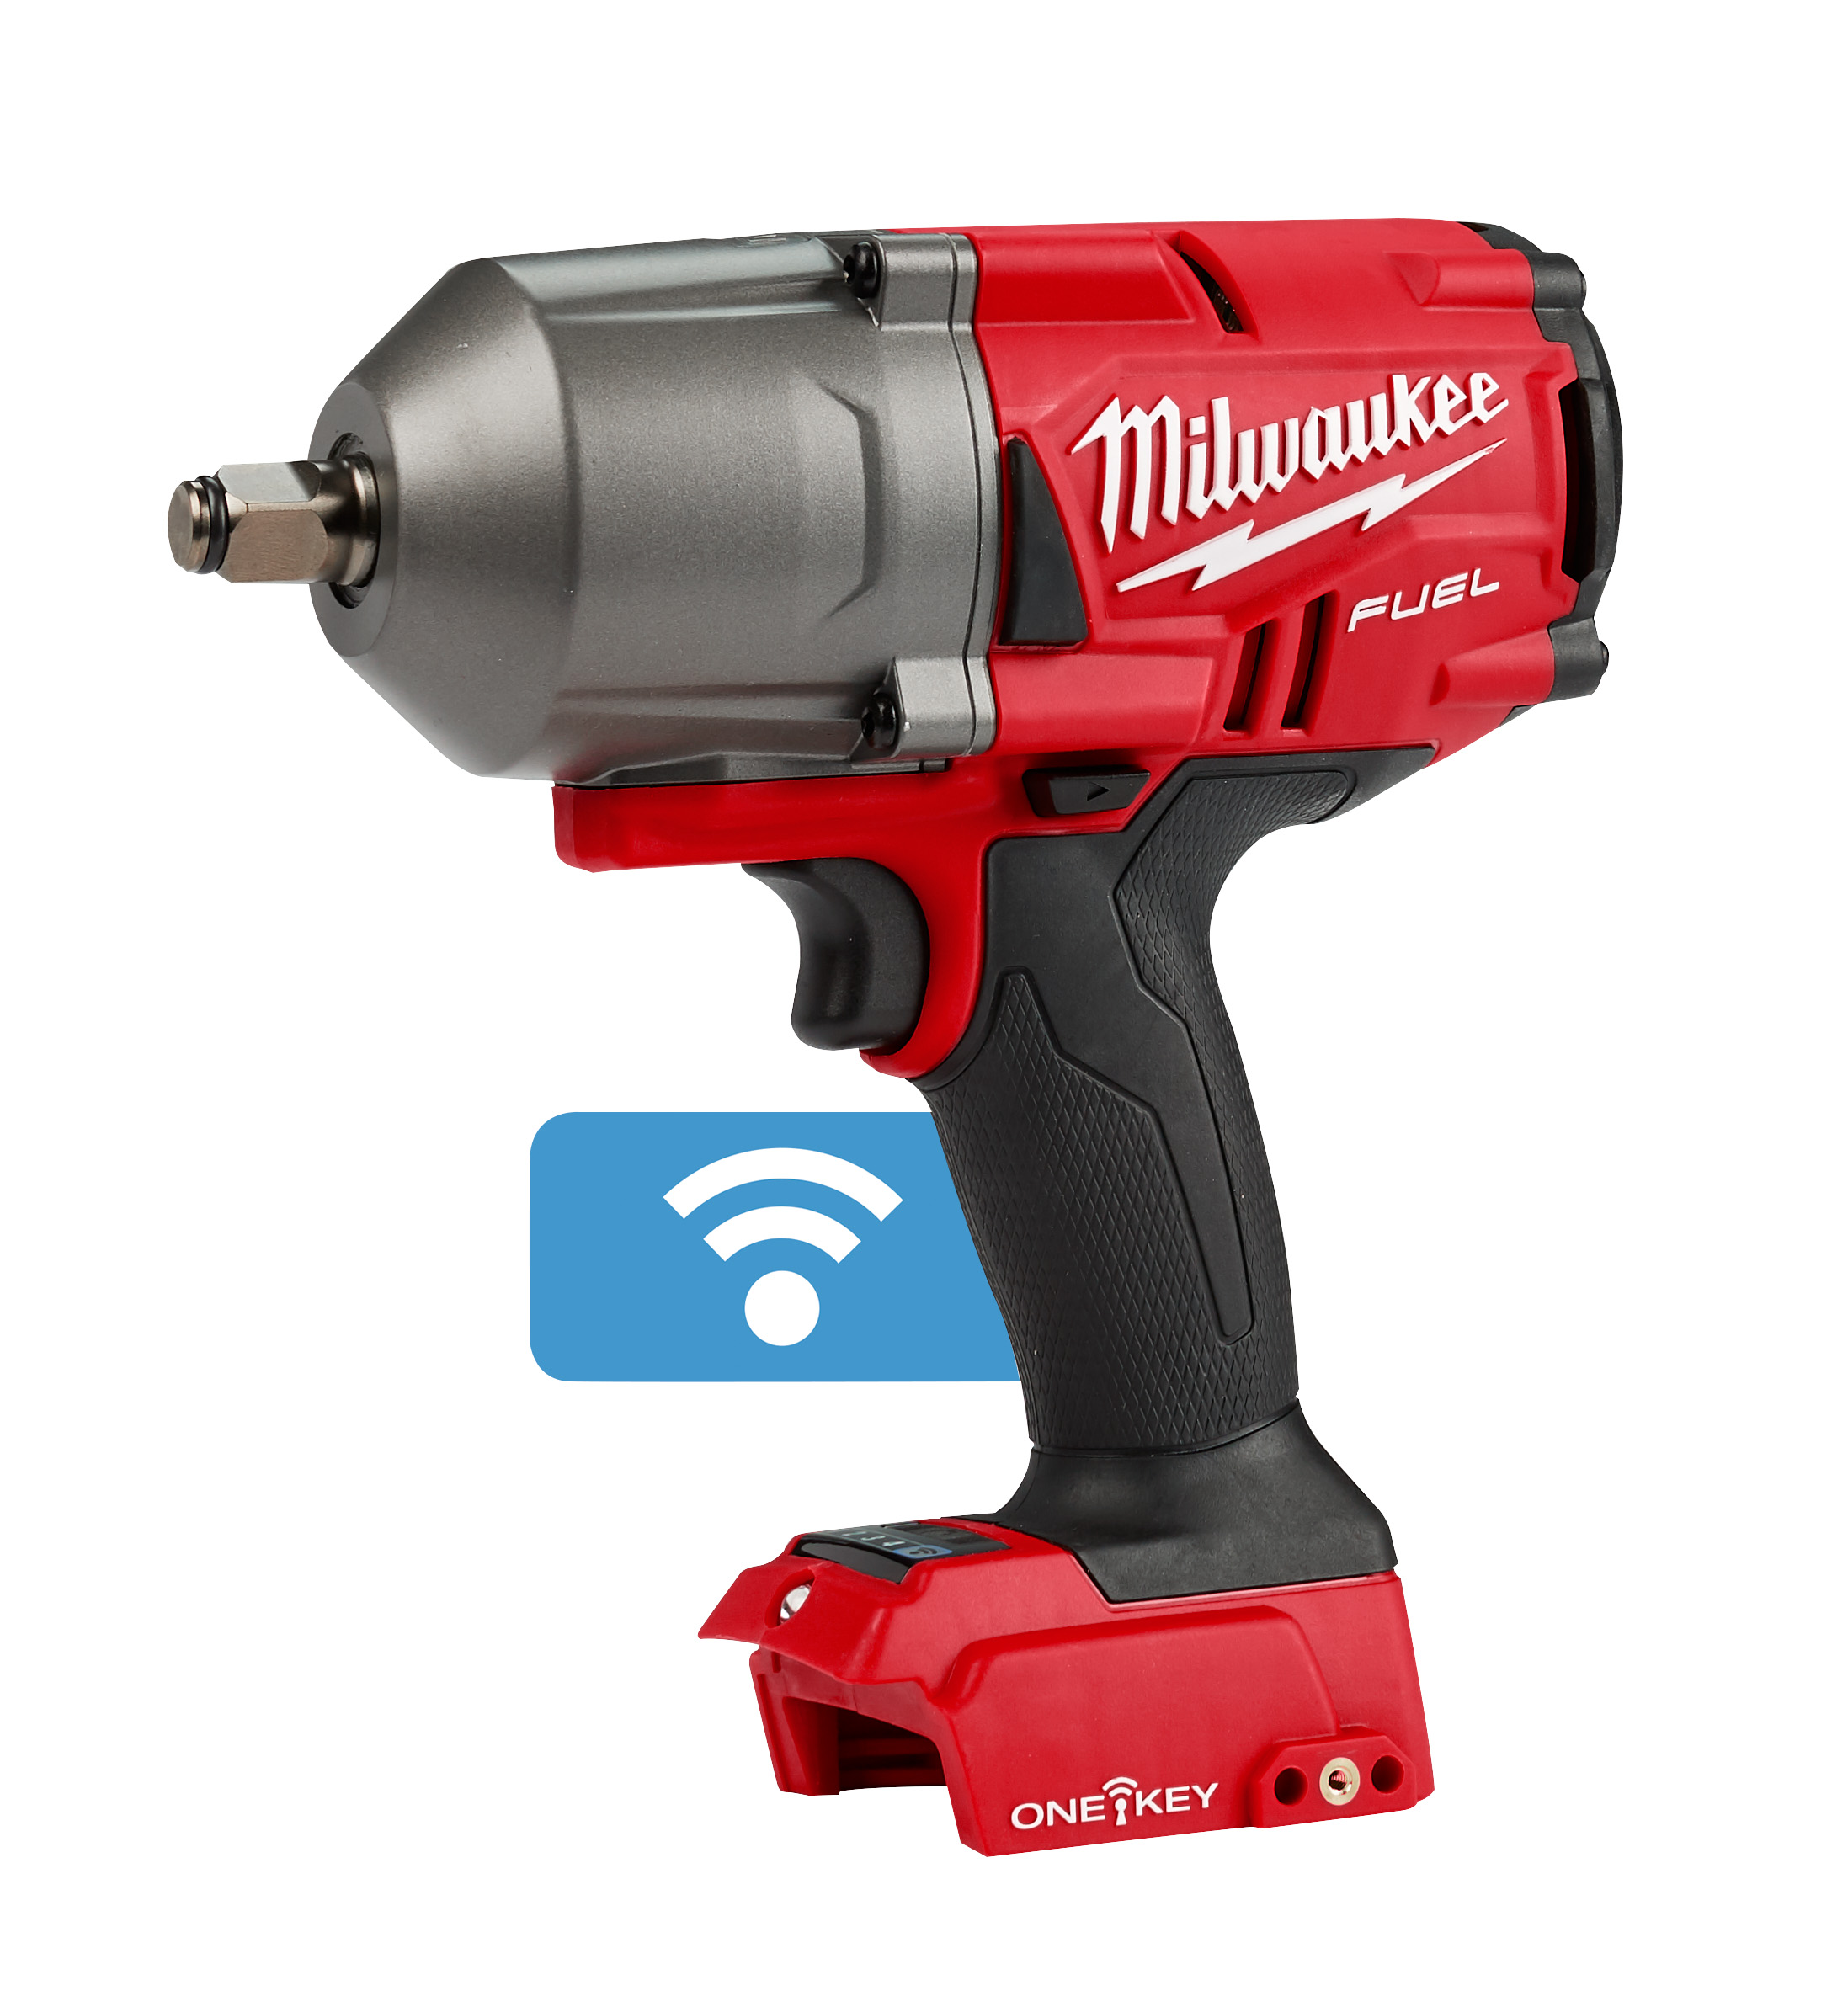 Milwaukee® M18™ FUEL™ ONE-KEY® 2863-20 Cordless High Torque Impact Wrench With 1/2 in Friction Ring, 1/2 in 4-Mode Straight Drive, 2100 bpm, 1000/1400 ft-lb Torque, 18 VDC, 8.39 in OAL